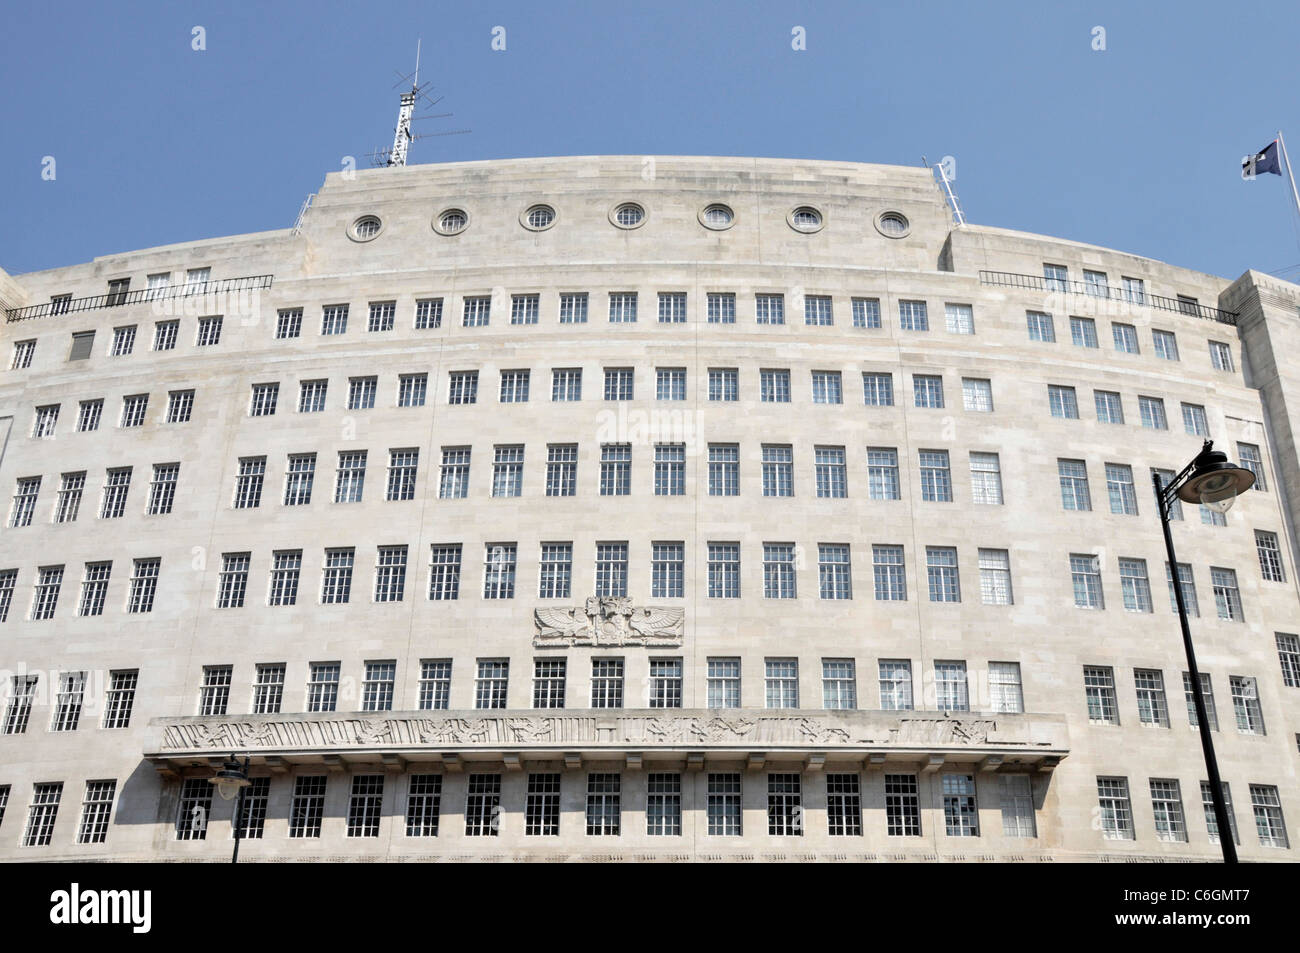 BBC Broadcasting House headquarters of the BBC in Portland Place London England UK - Stock Image